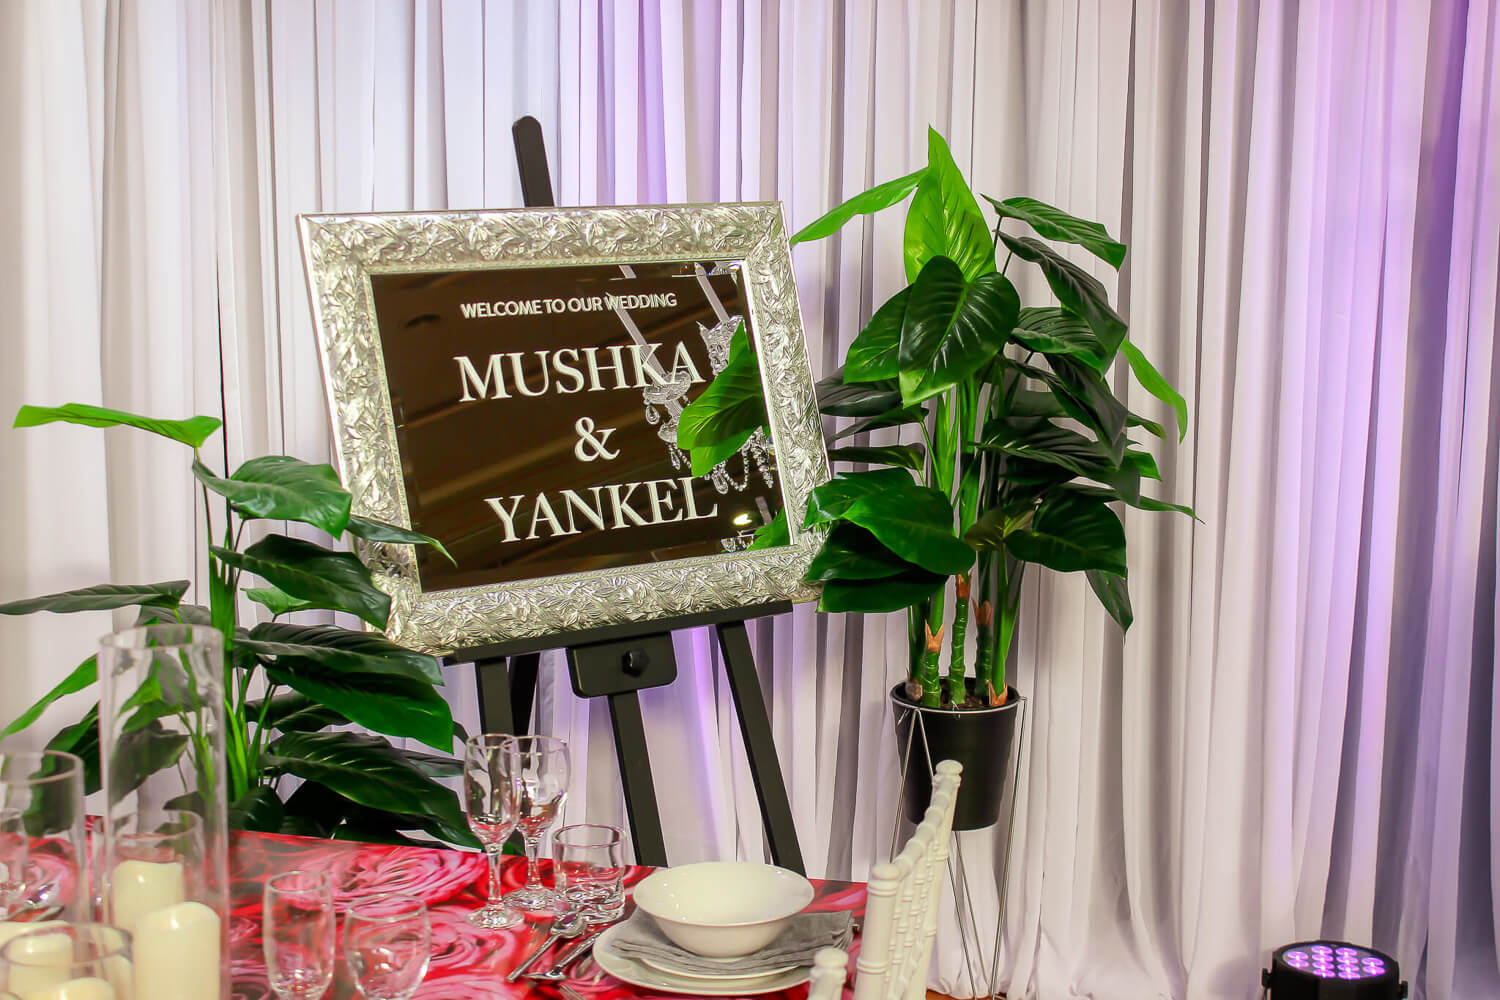 Decal on mirror hire wedding melbourne